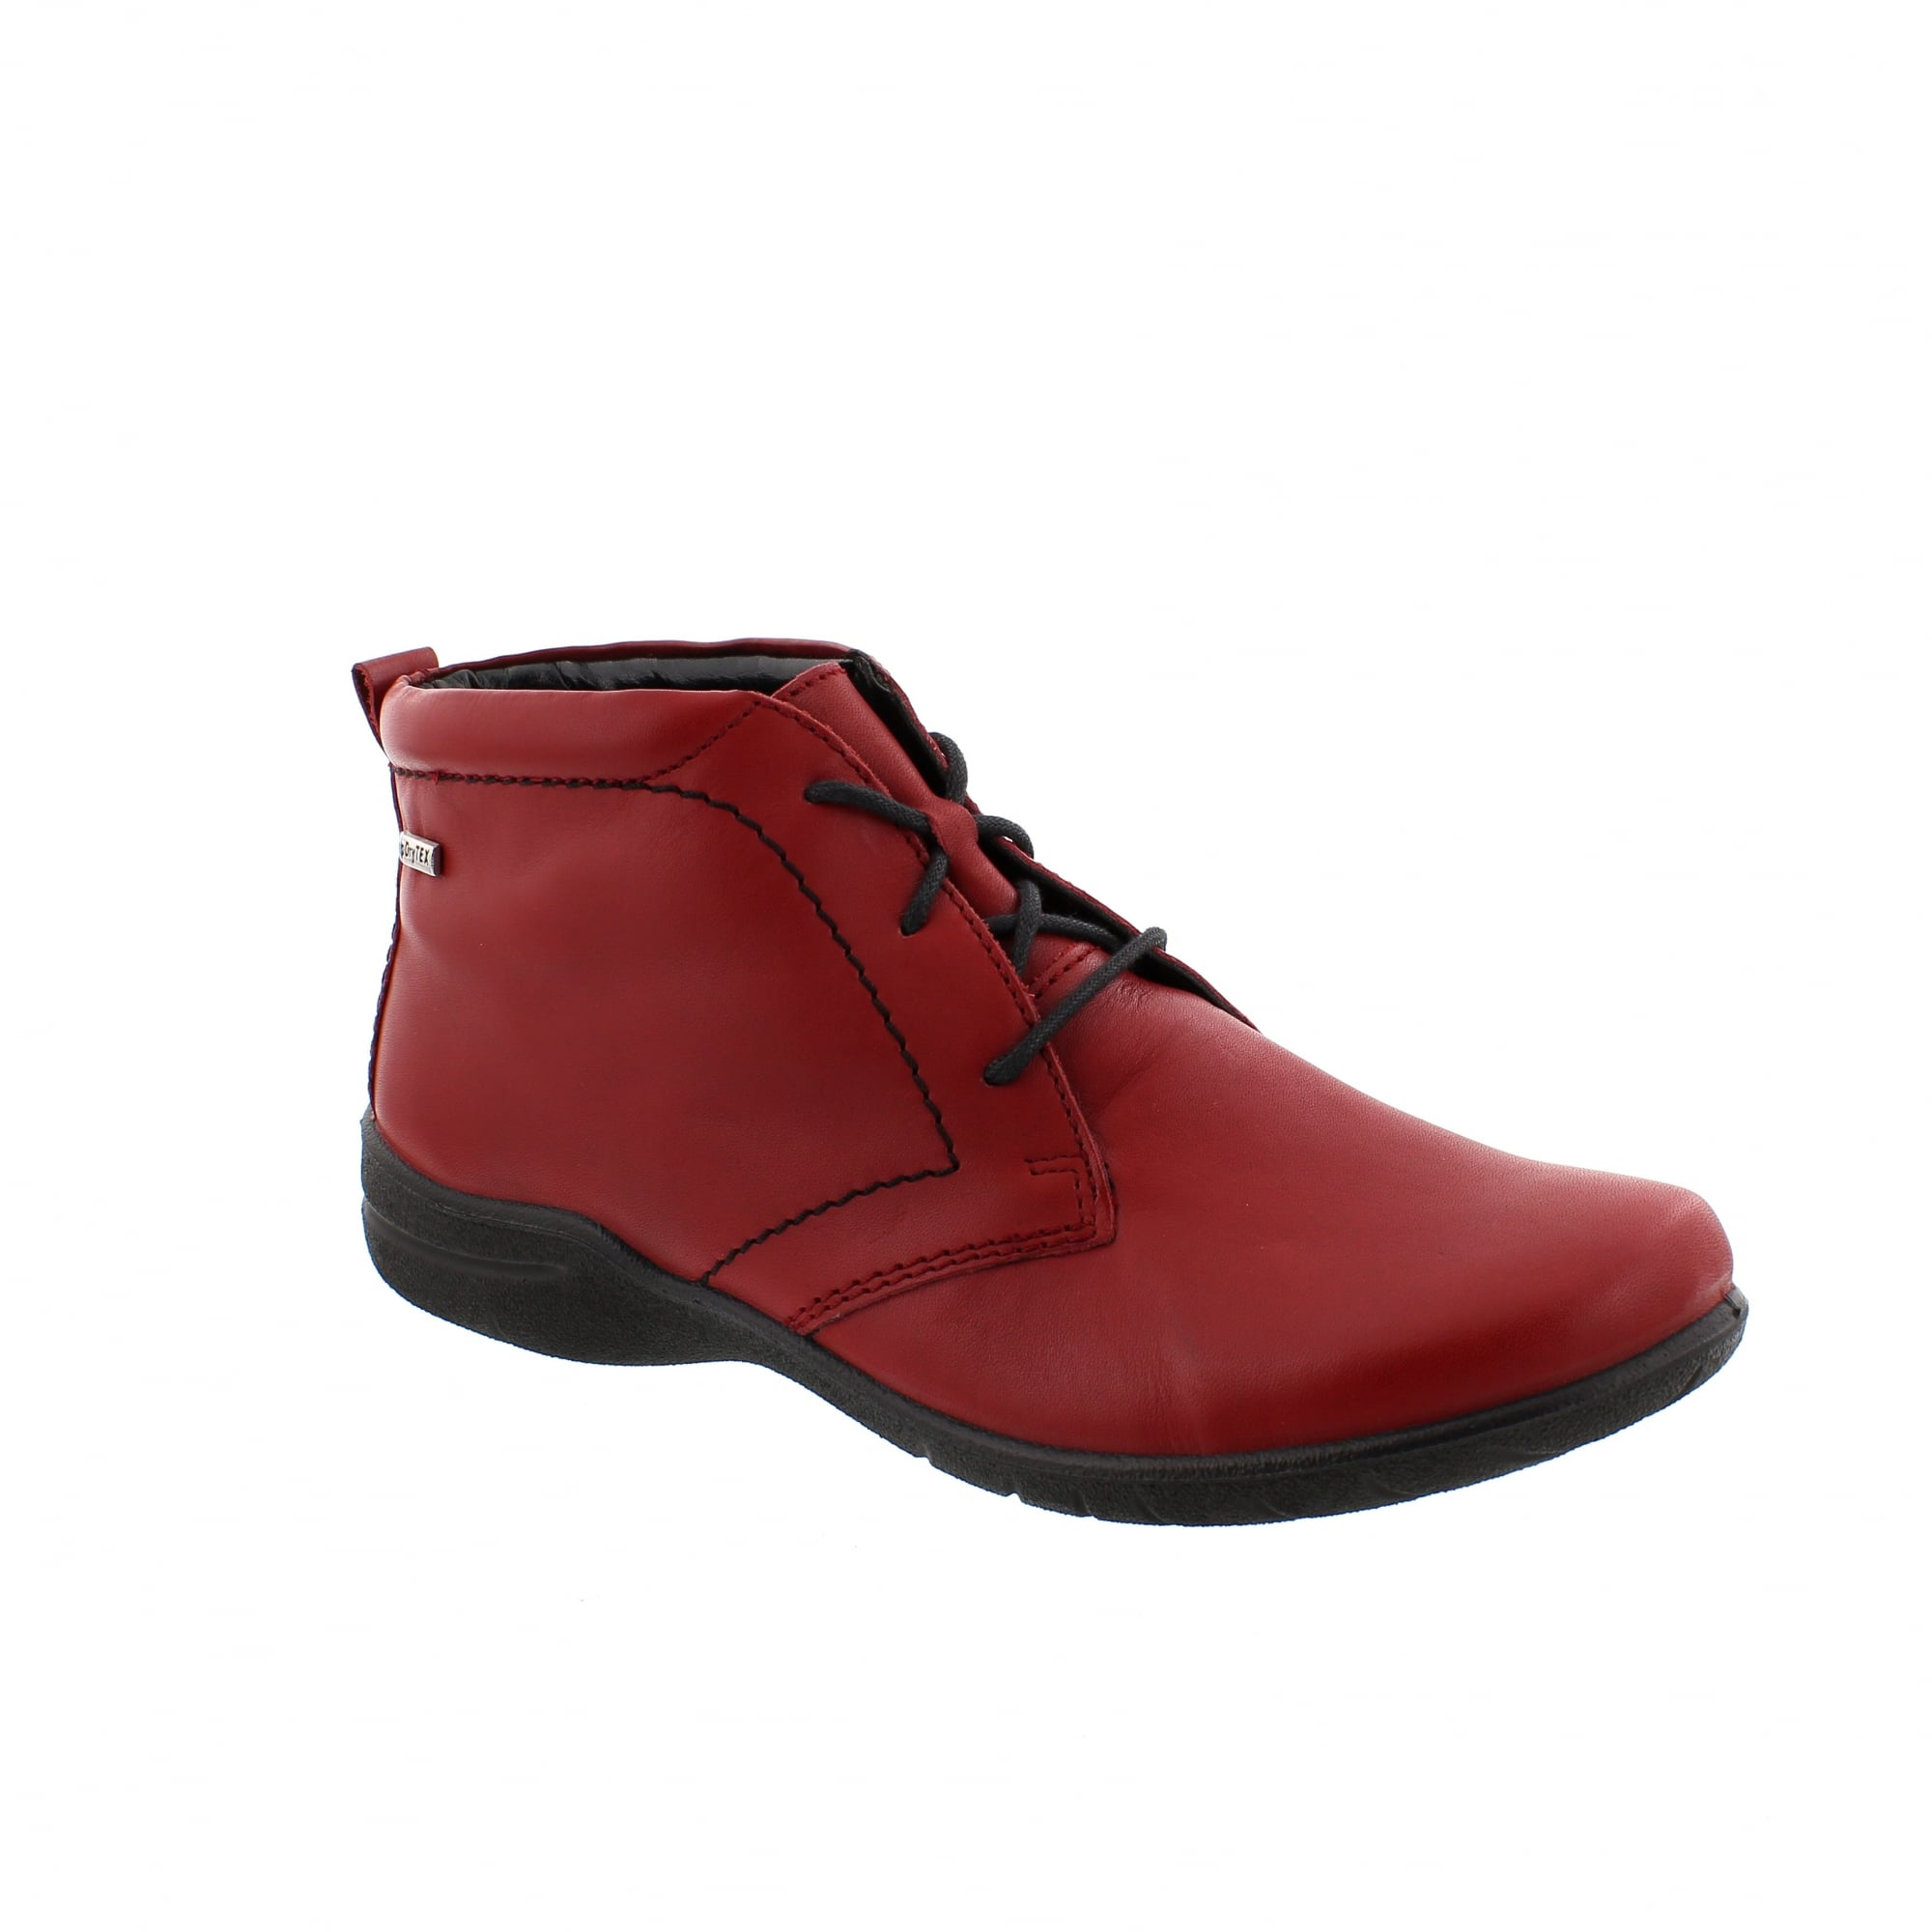 1ed700f3694c7 Josef Seibel Fabienne 4 Red Womens Ankle Boots | Rogerson Shoes